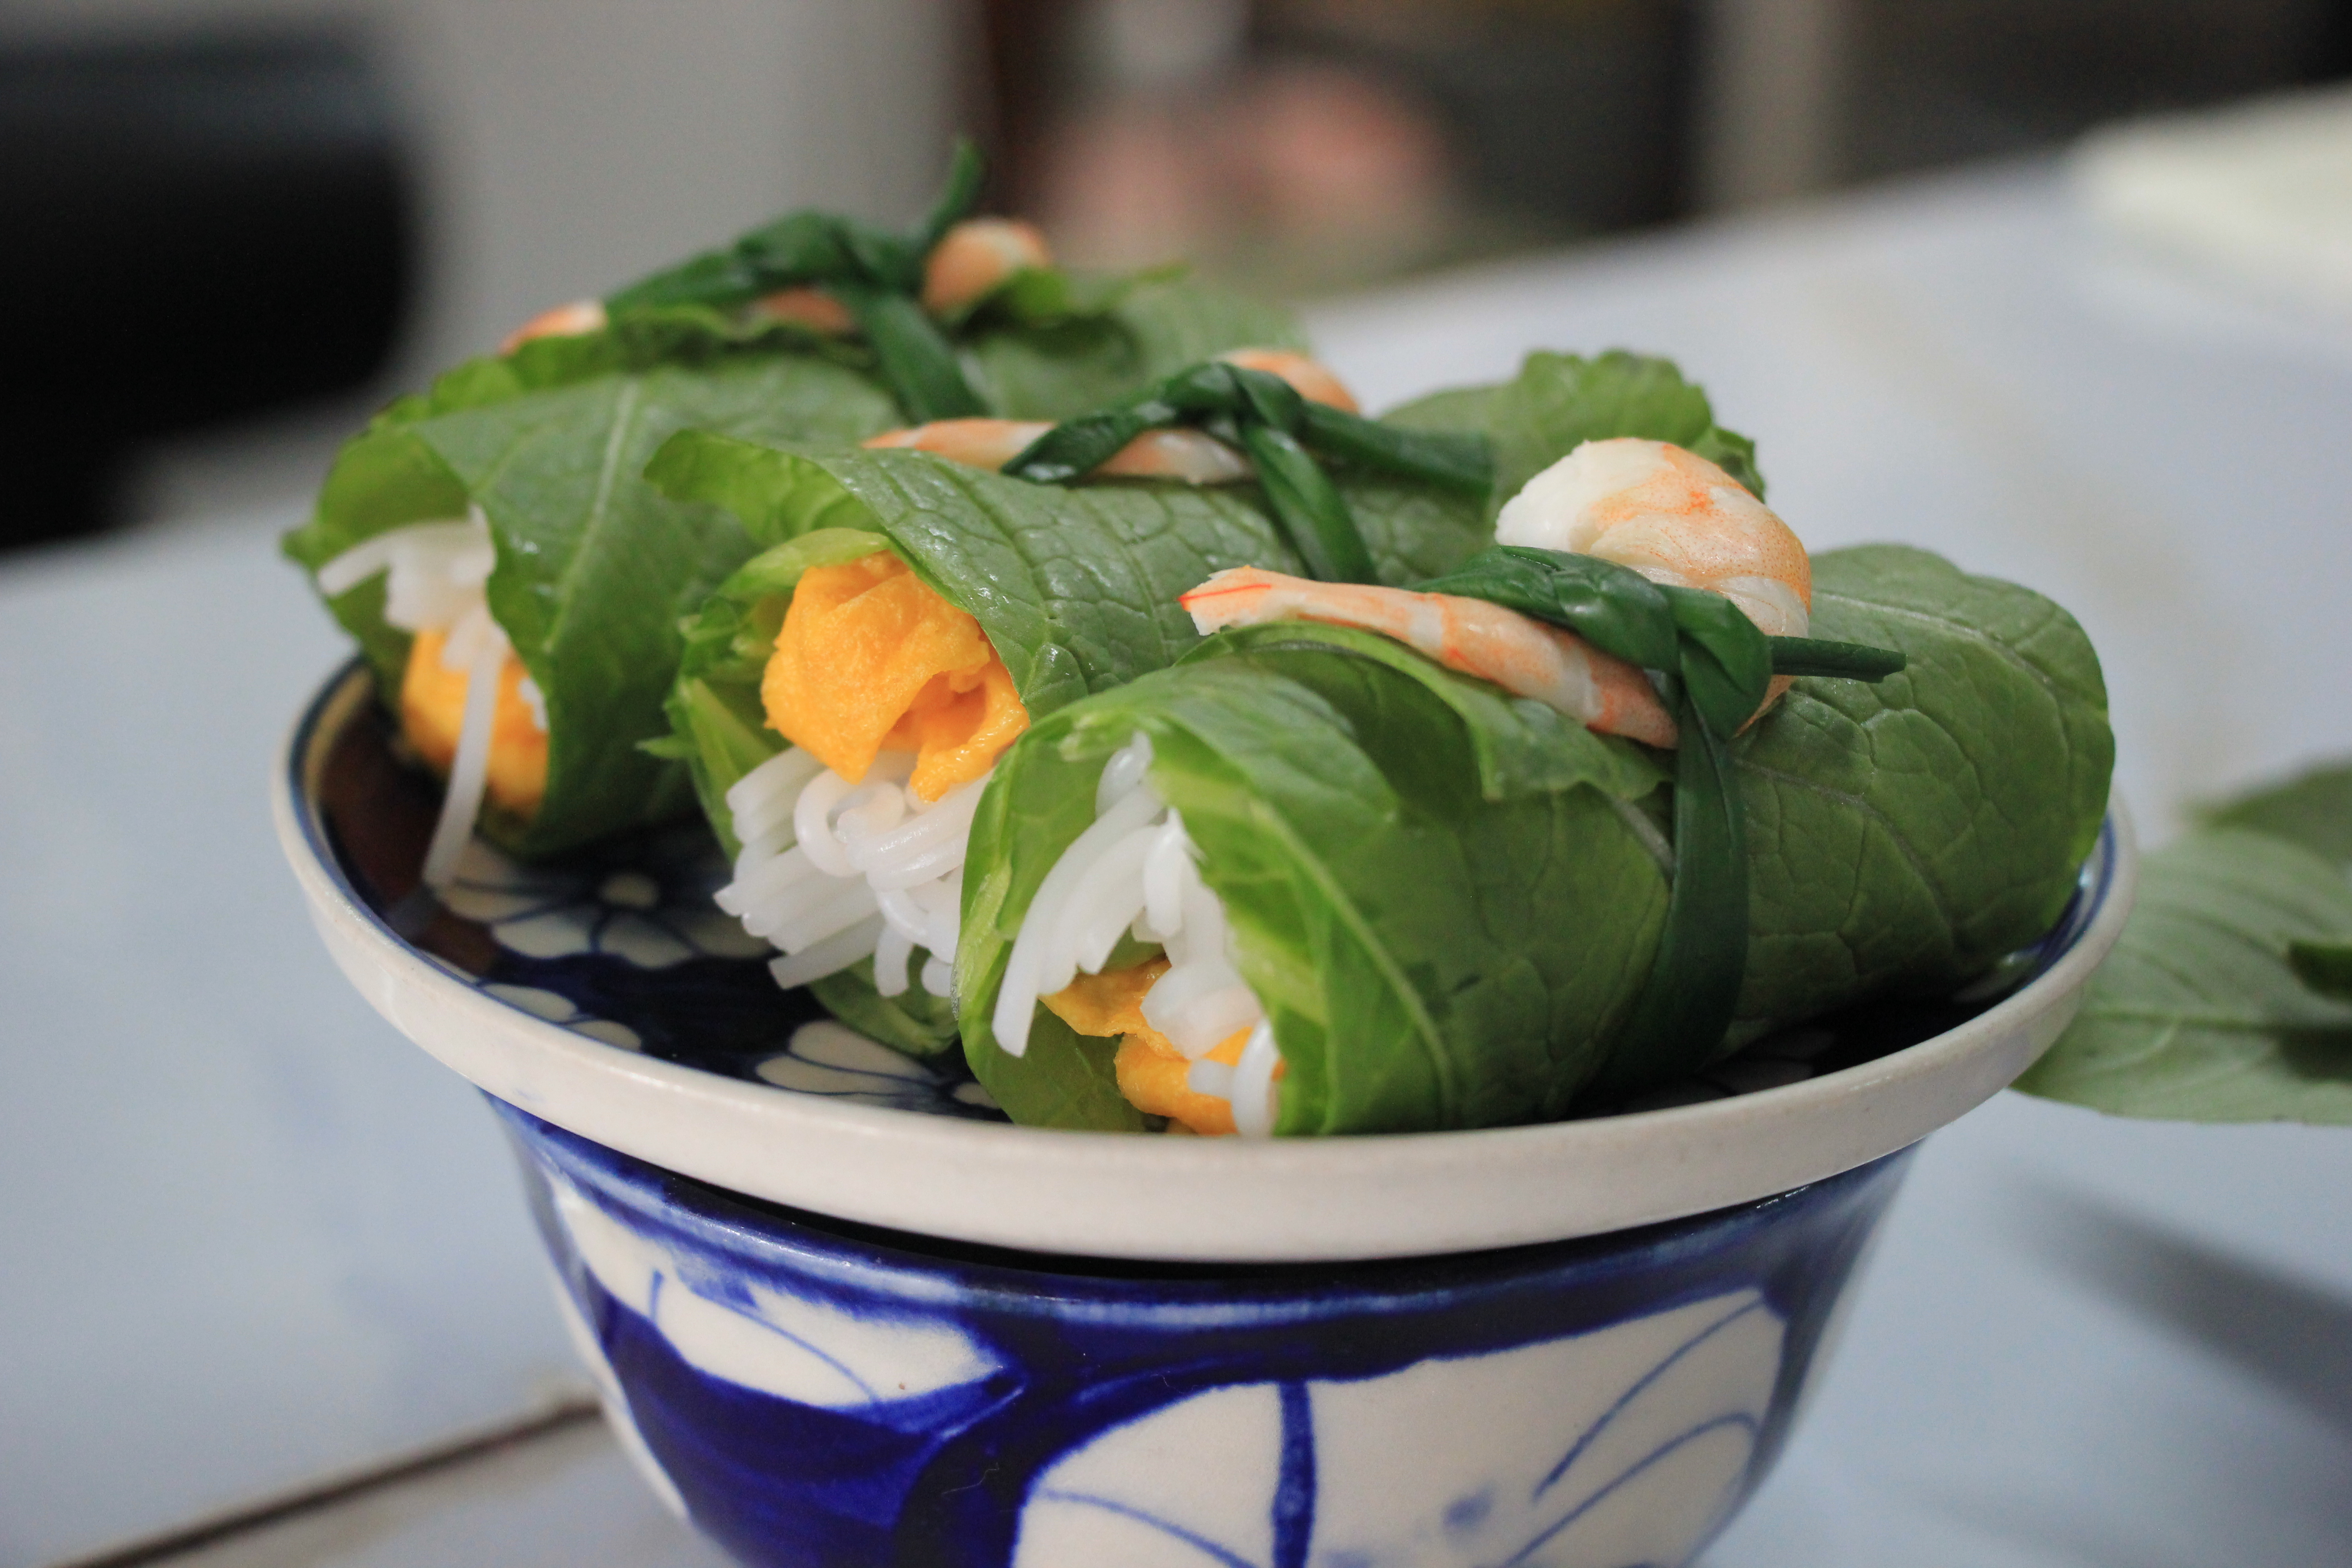 Three rolls of cuốn diếp, a delicacy from northern Vietnam. Photo: Dong Nguyen/Tuoi Tre News